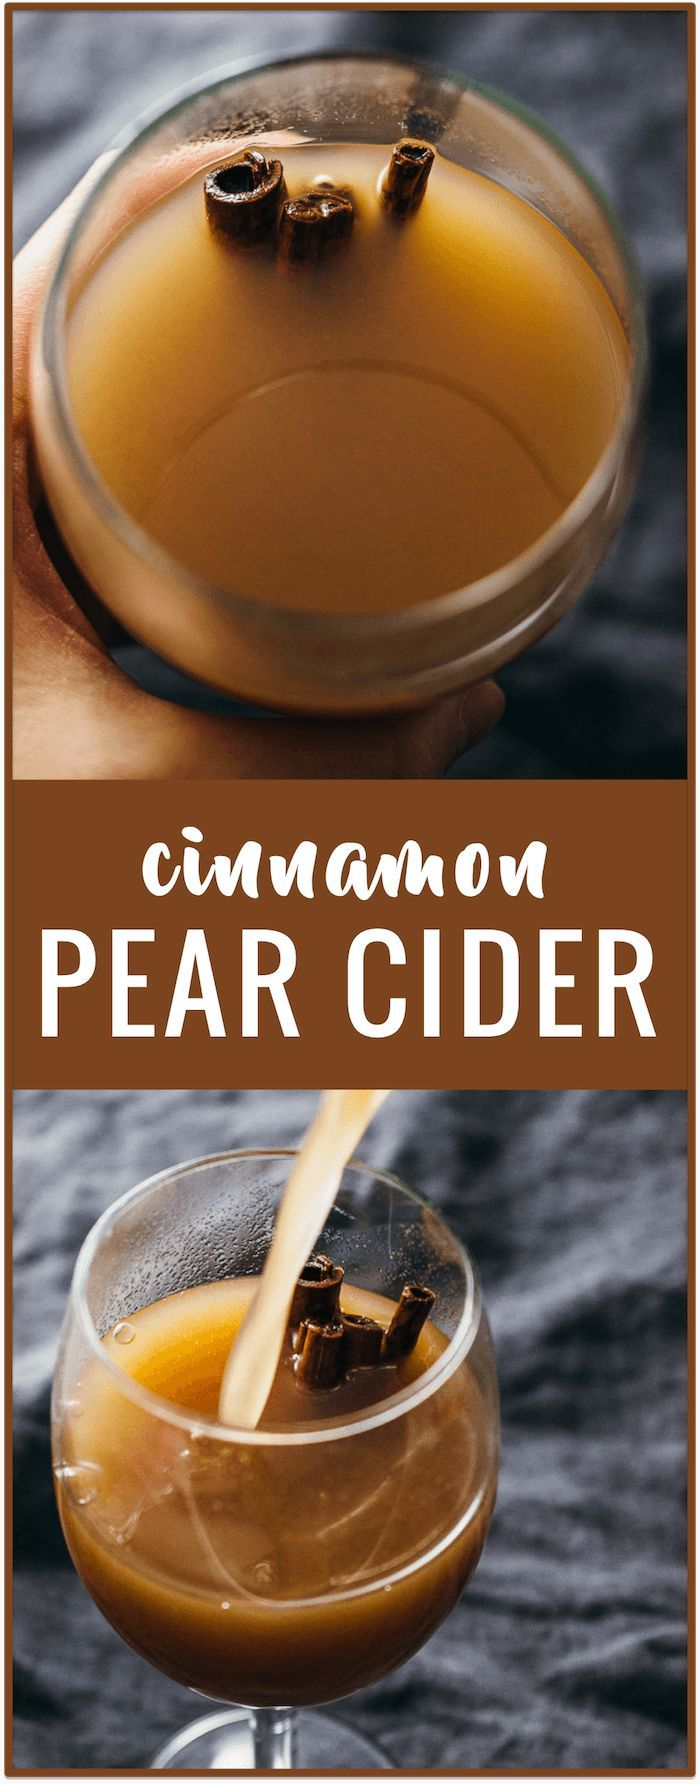 Cinnamon pear cider recipe - This healthy pear cider recipe is made using real fruits and a handful of spices. It can be enjoyed hot or cold, and is the perfect holiday beverage.